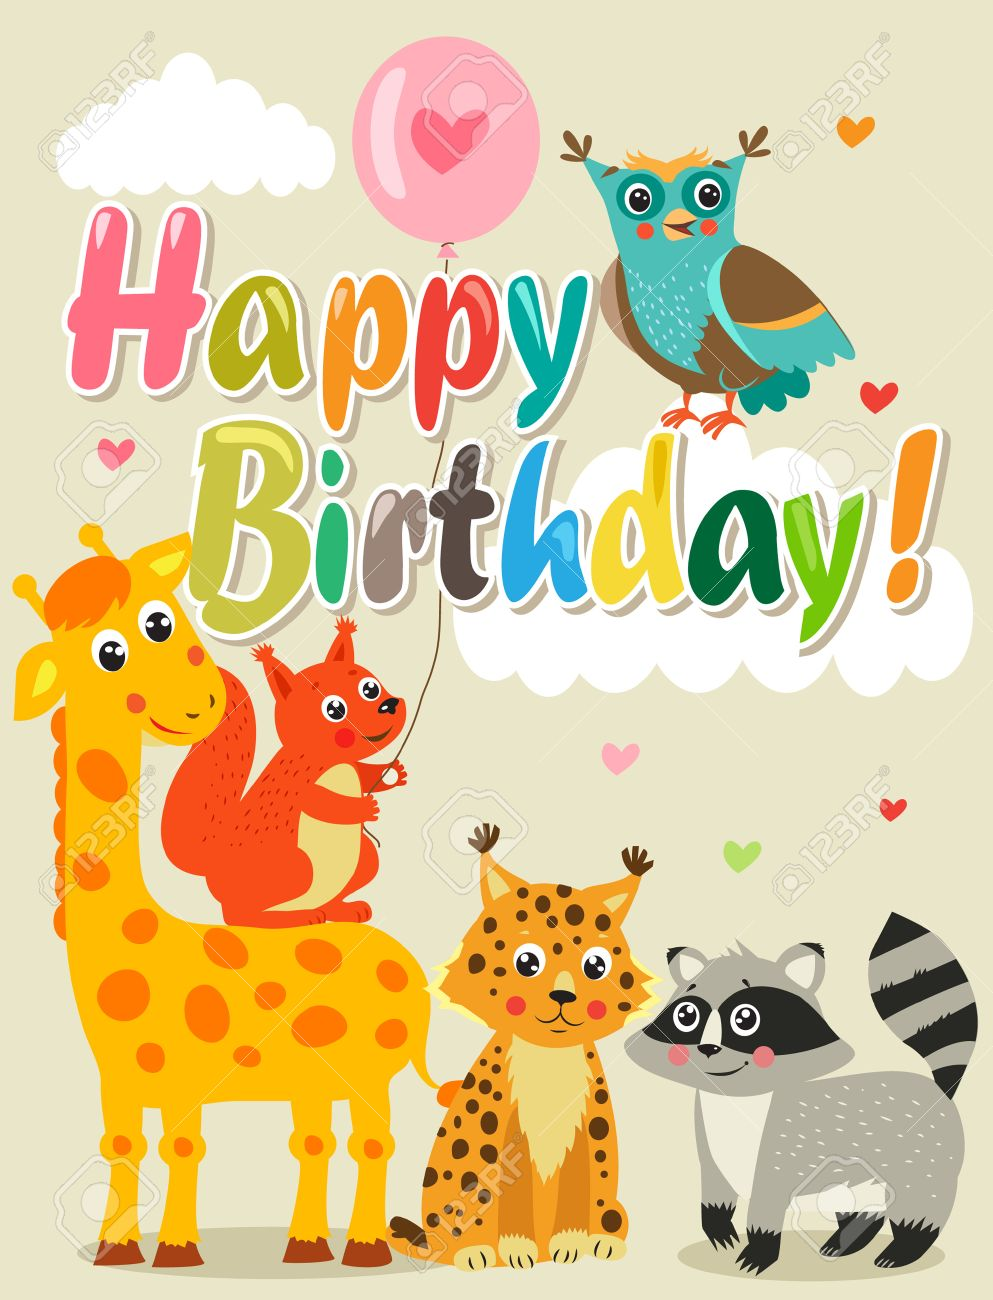 Happy Birthday Card With Funny Animals Vector Illustration Royalty Free Cliparts Vectors And Stock Illustration Image 62541067